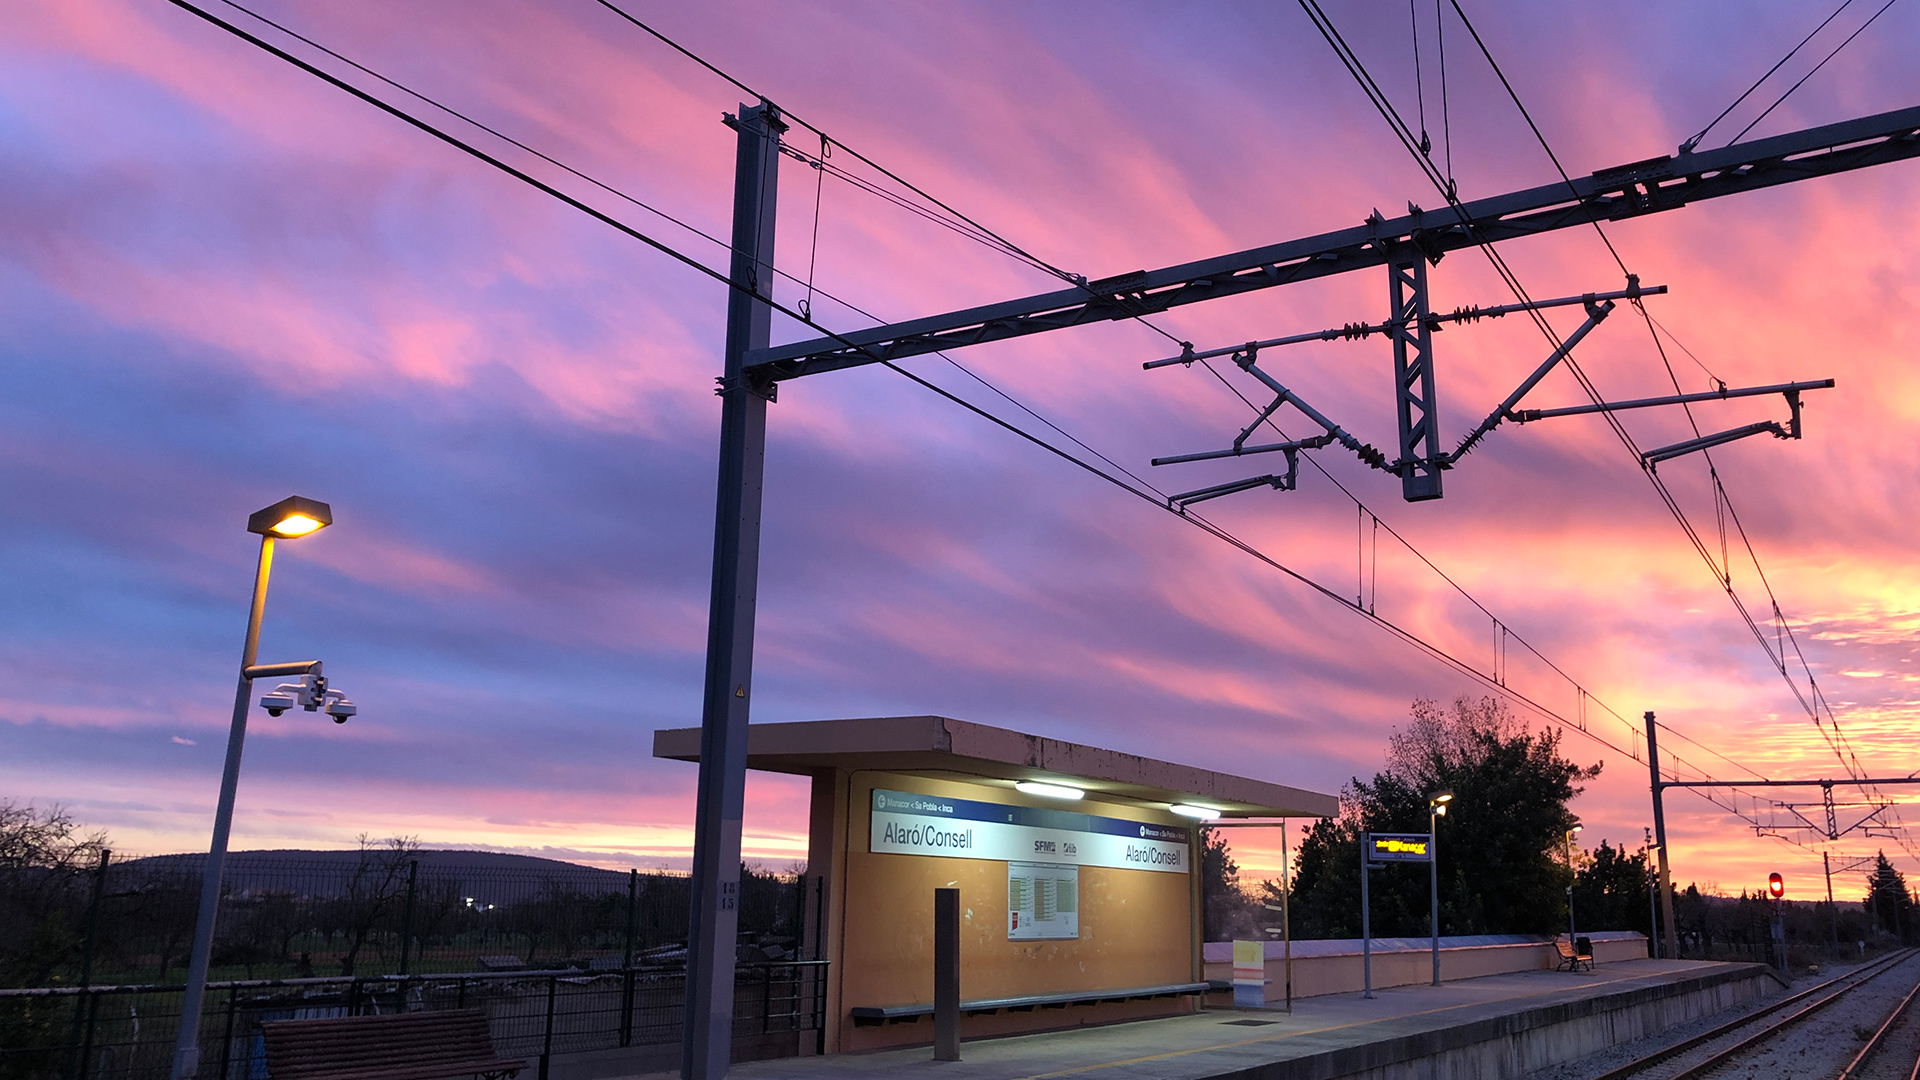 Sunset autumn train station Photo Adele Chretien